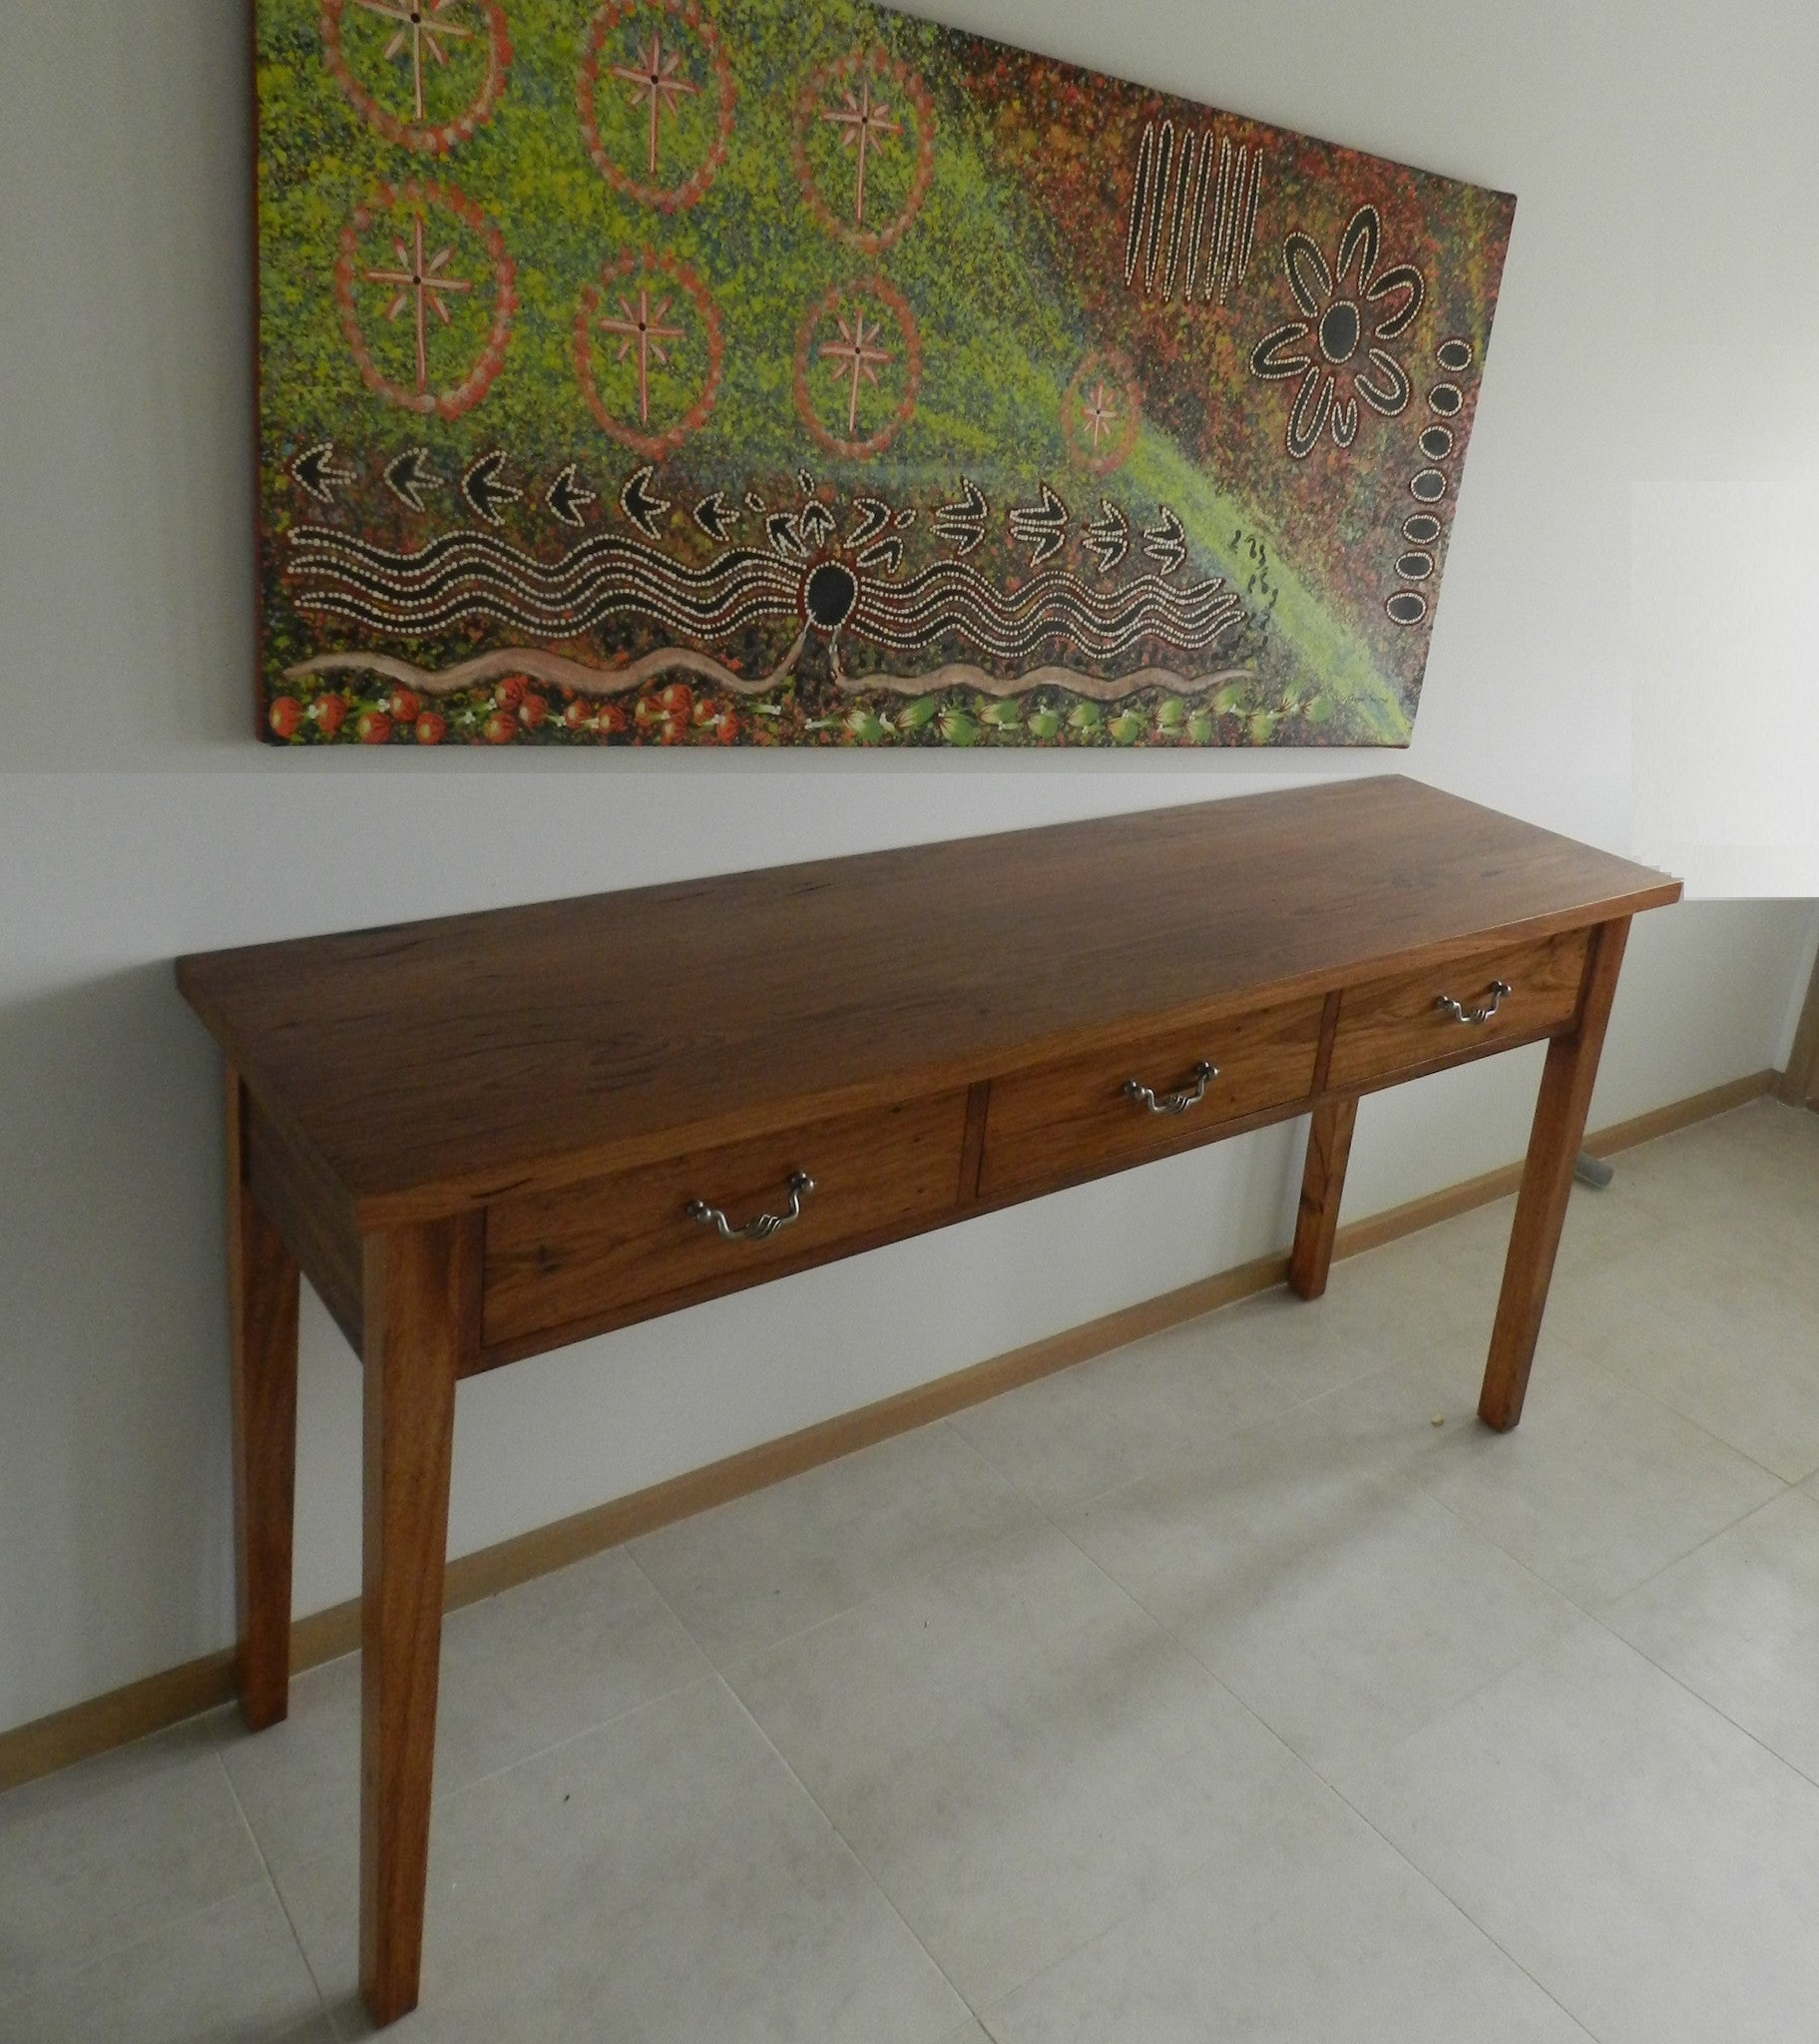 Magpie Hall Table